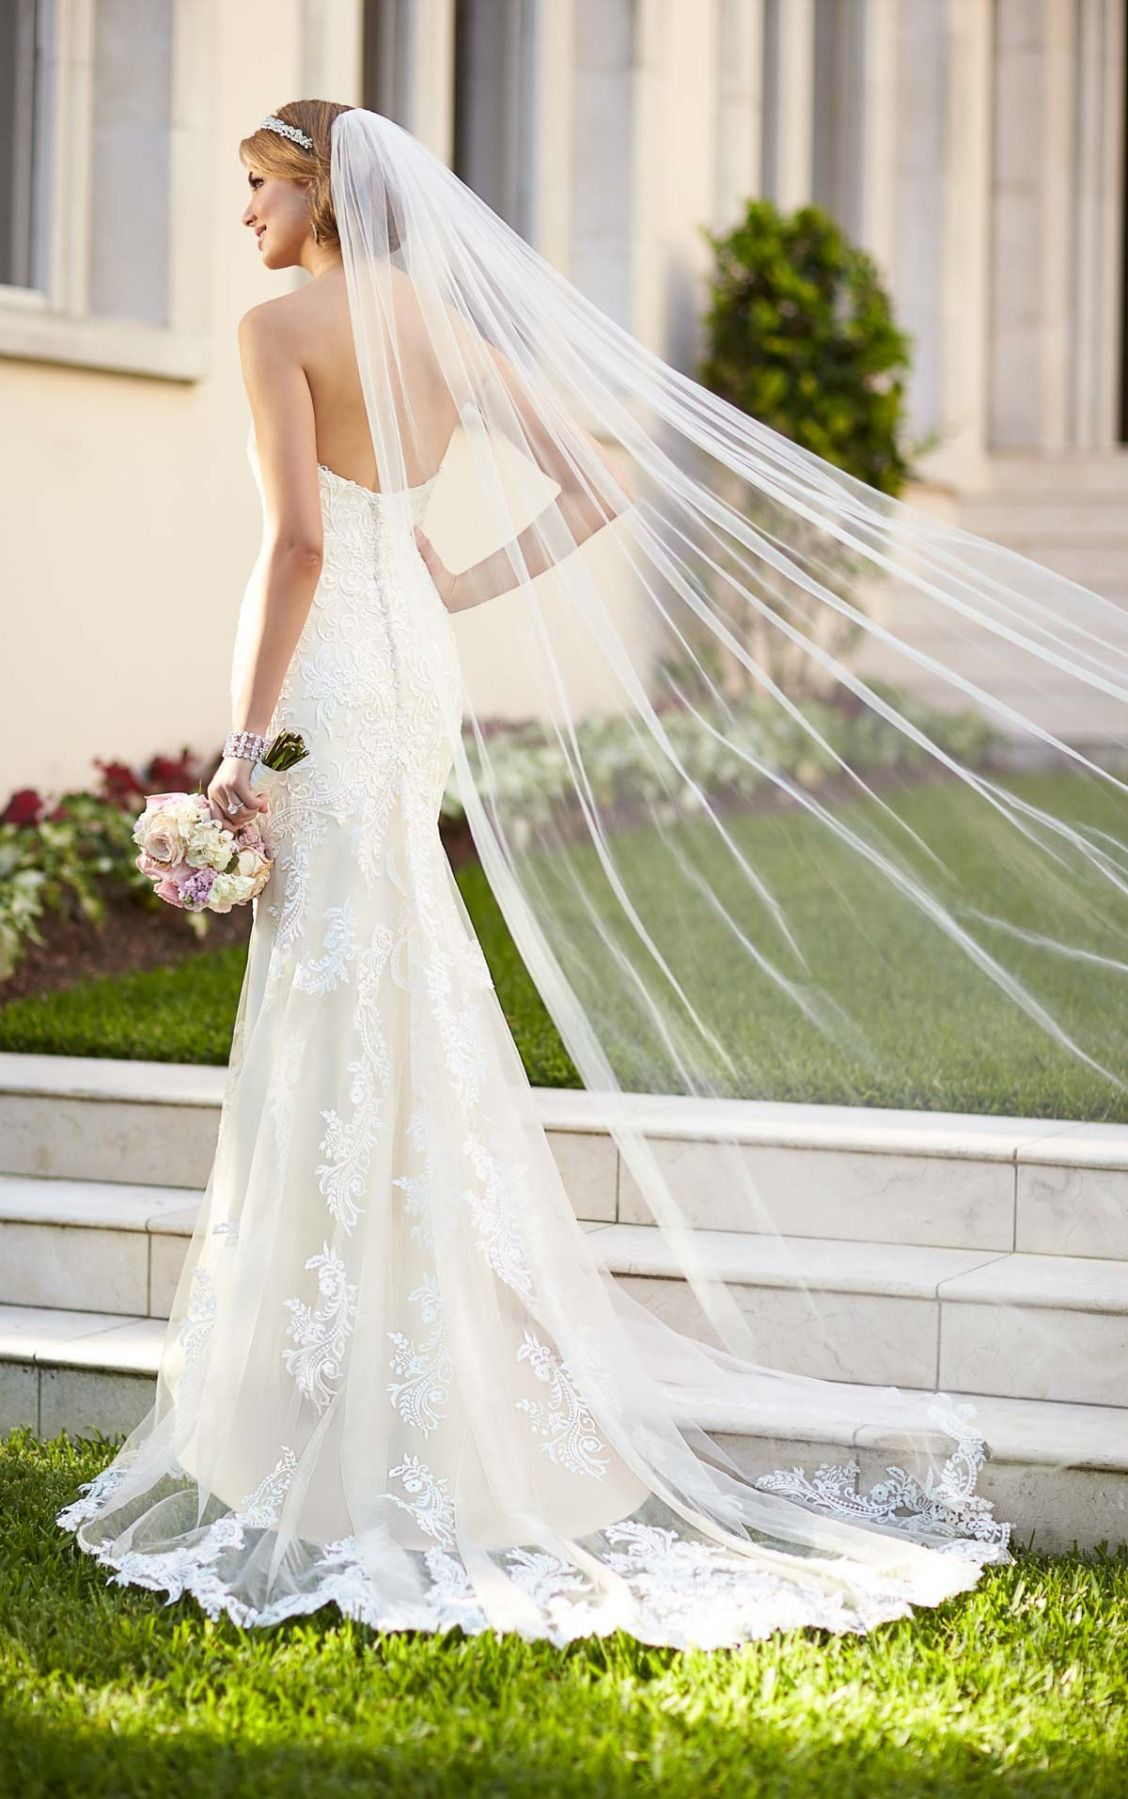 This Lace Over Matte Side Lavish Satin Wedding Gown From Stella York Features Hand Sewn Embellishments On Liques The Strapless Sweetheart Neckline